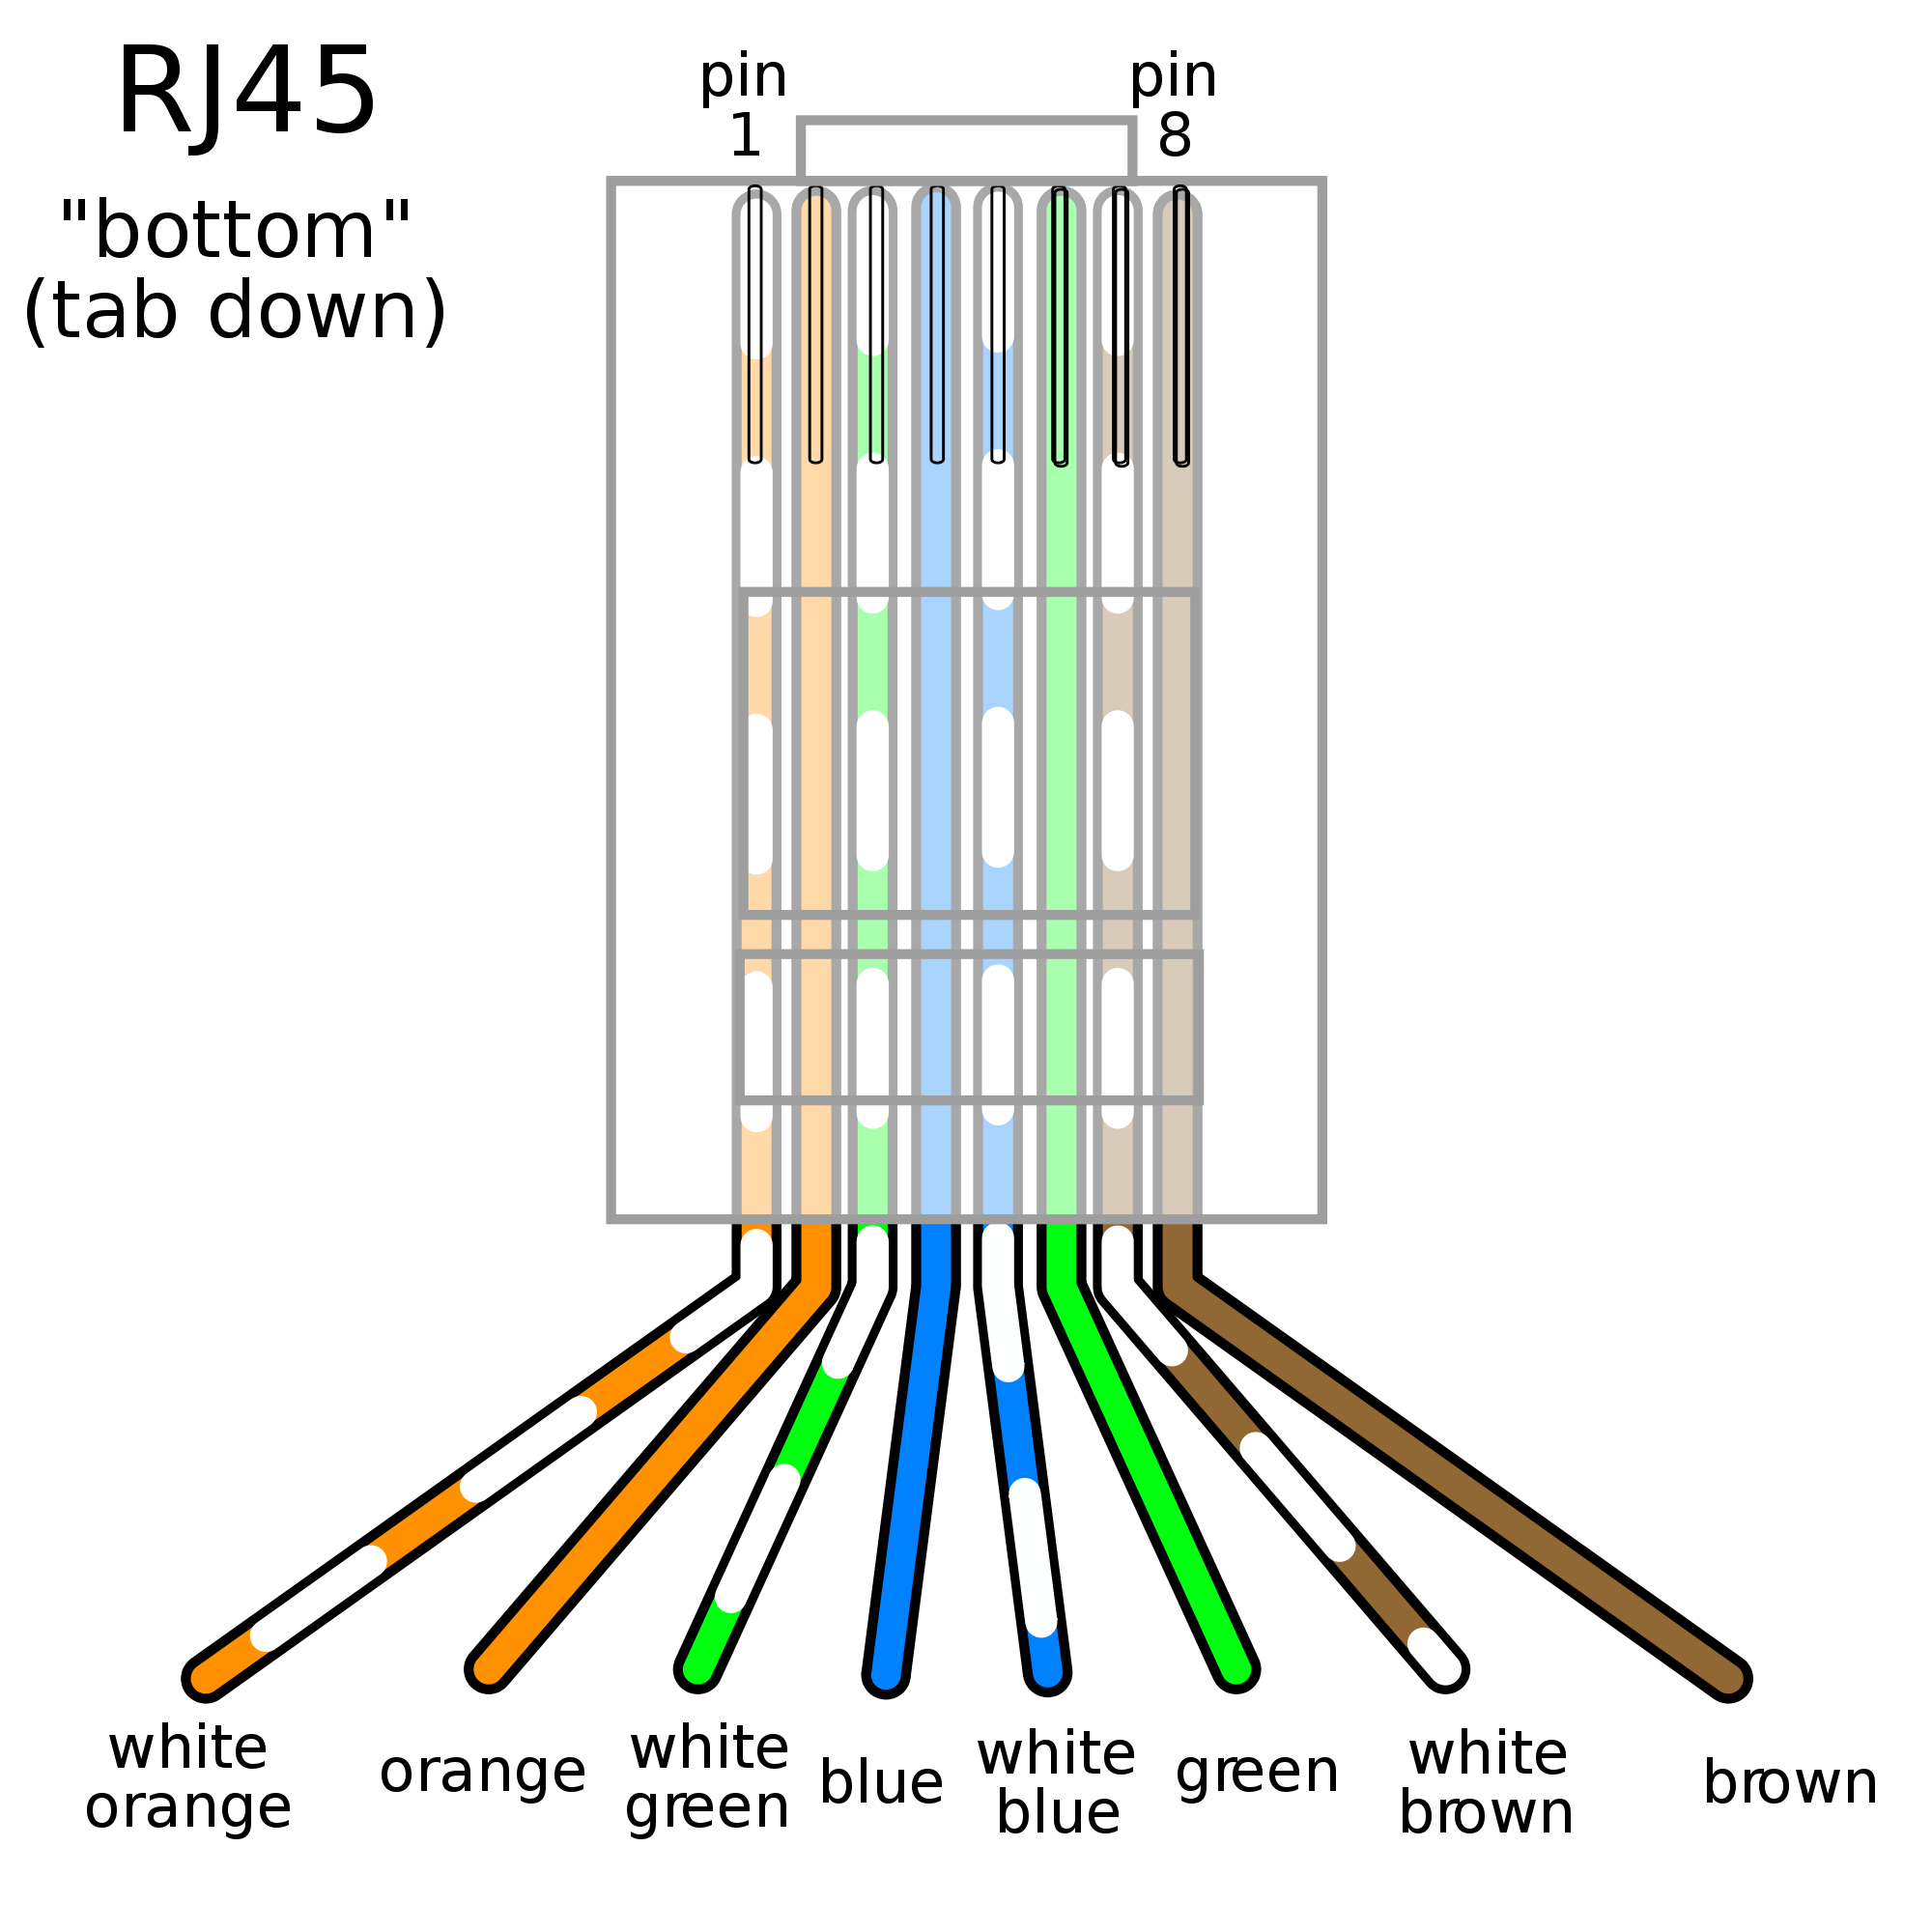 Wiring Diagram On Ether Cable Wiring Diagram Further Standard Cat 6